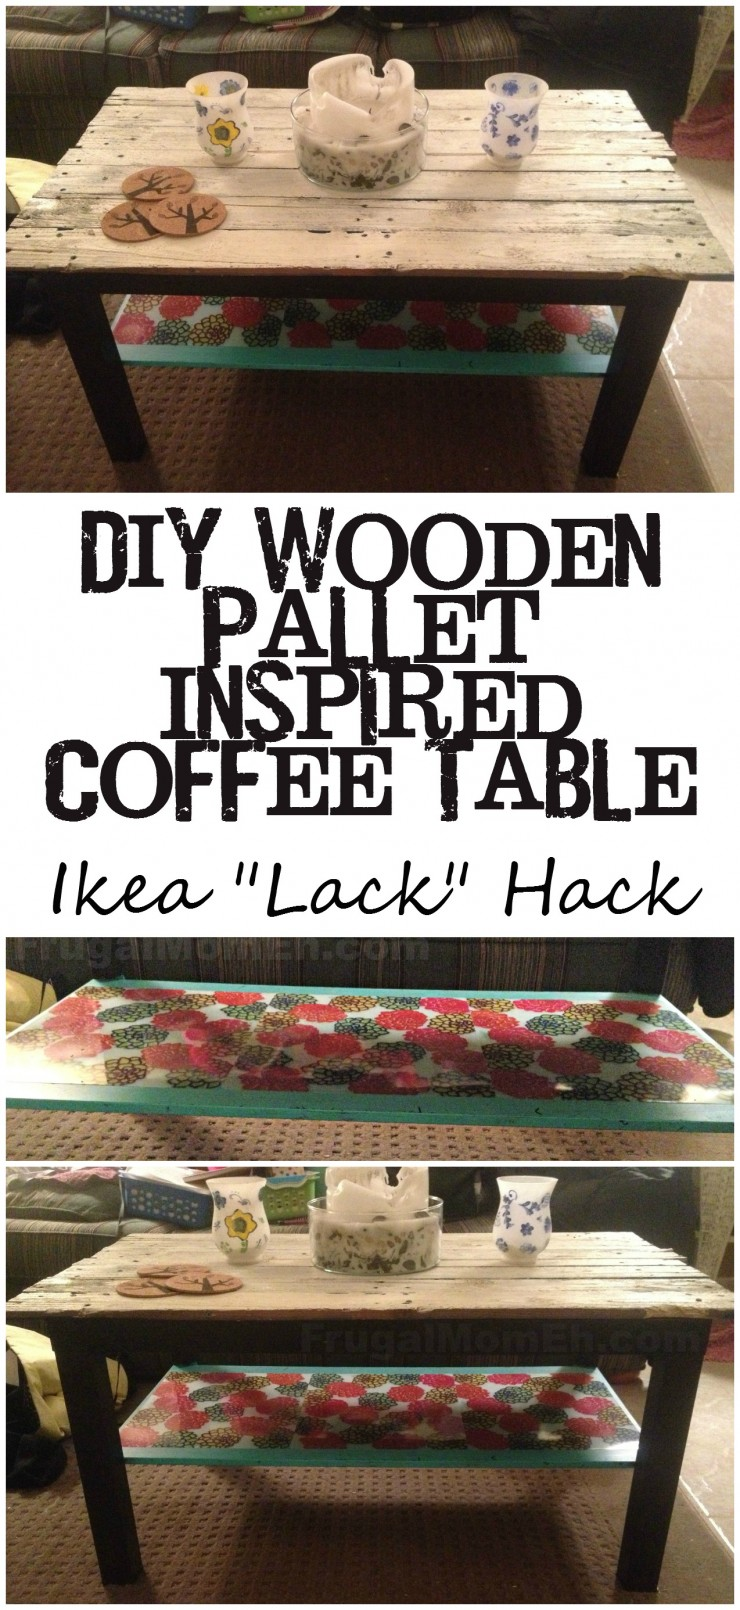 DIY Wooden Pallet Inspired Coffee Table